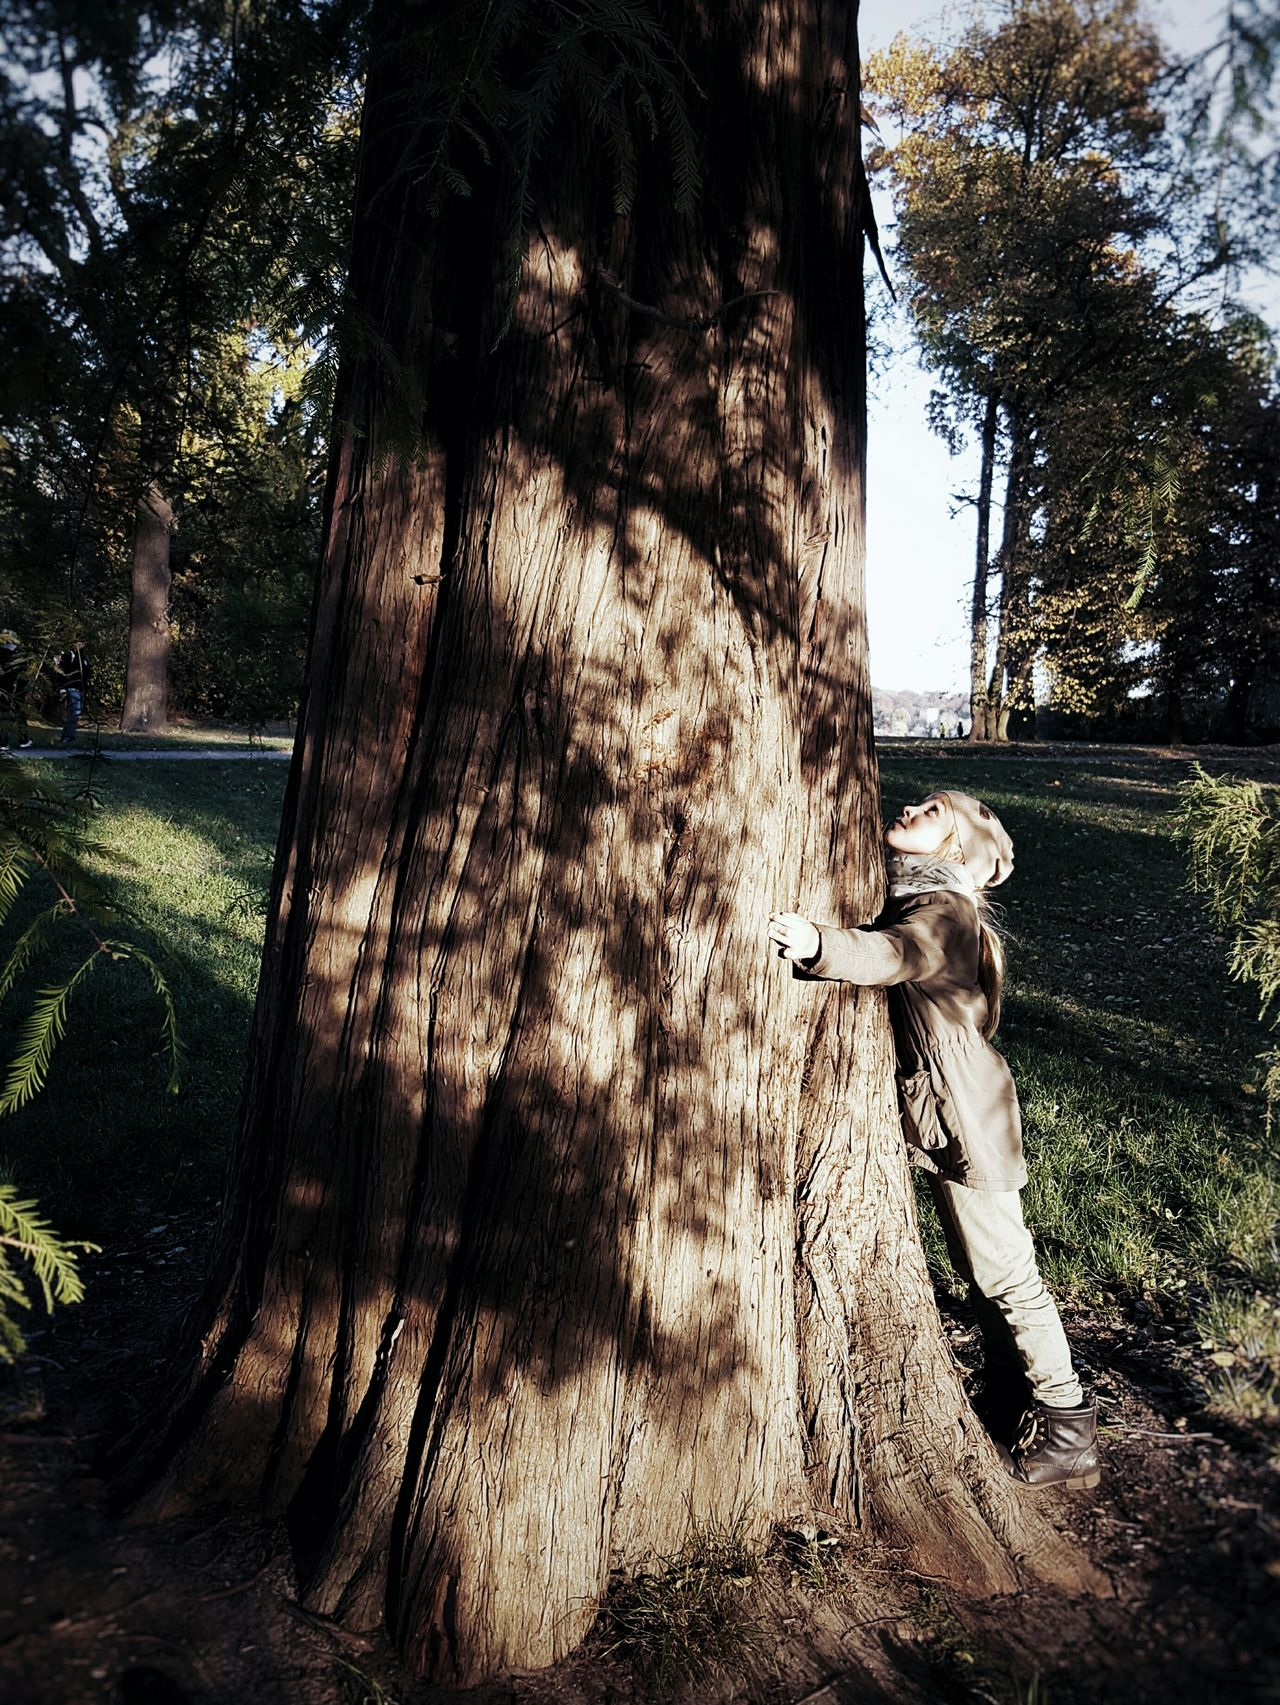 Old friend... Tree Real People One Person Day Outdoors People Childhood Child One Child Hugging A Tree Hug Enjoy The New Normal Beauty In Nature Light And Shadow Shadowplay Autumn Playing Outside Finding New Frontiers Adapted To The City